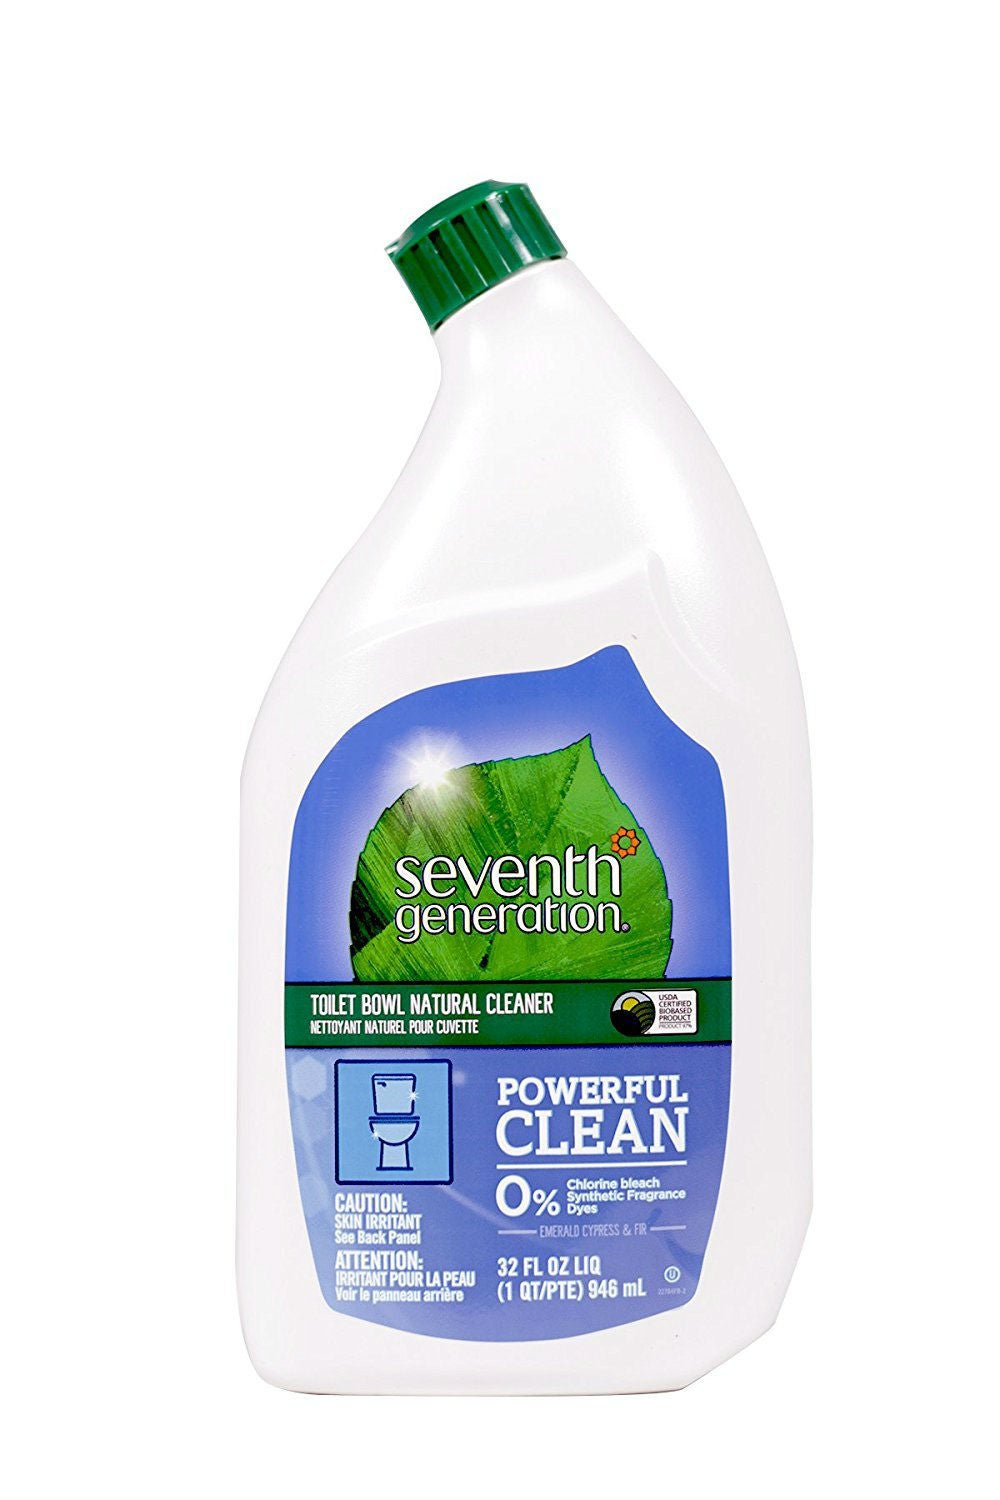 The Best Toilet Bowl Cleaner: Seventh Generation